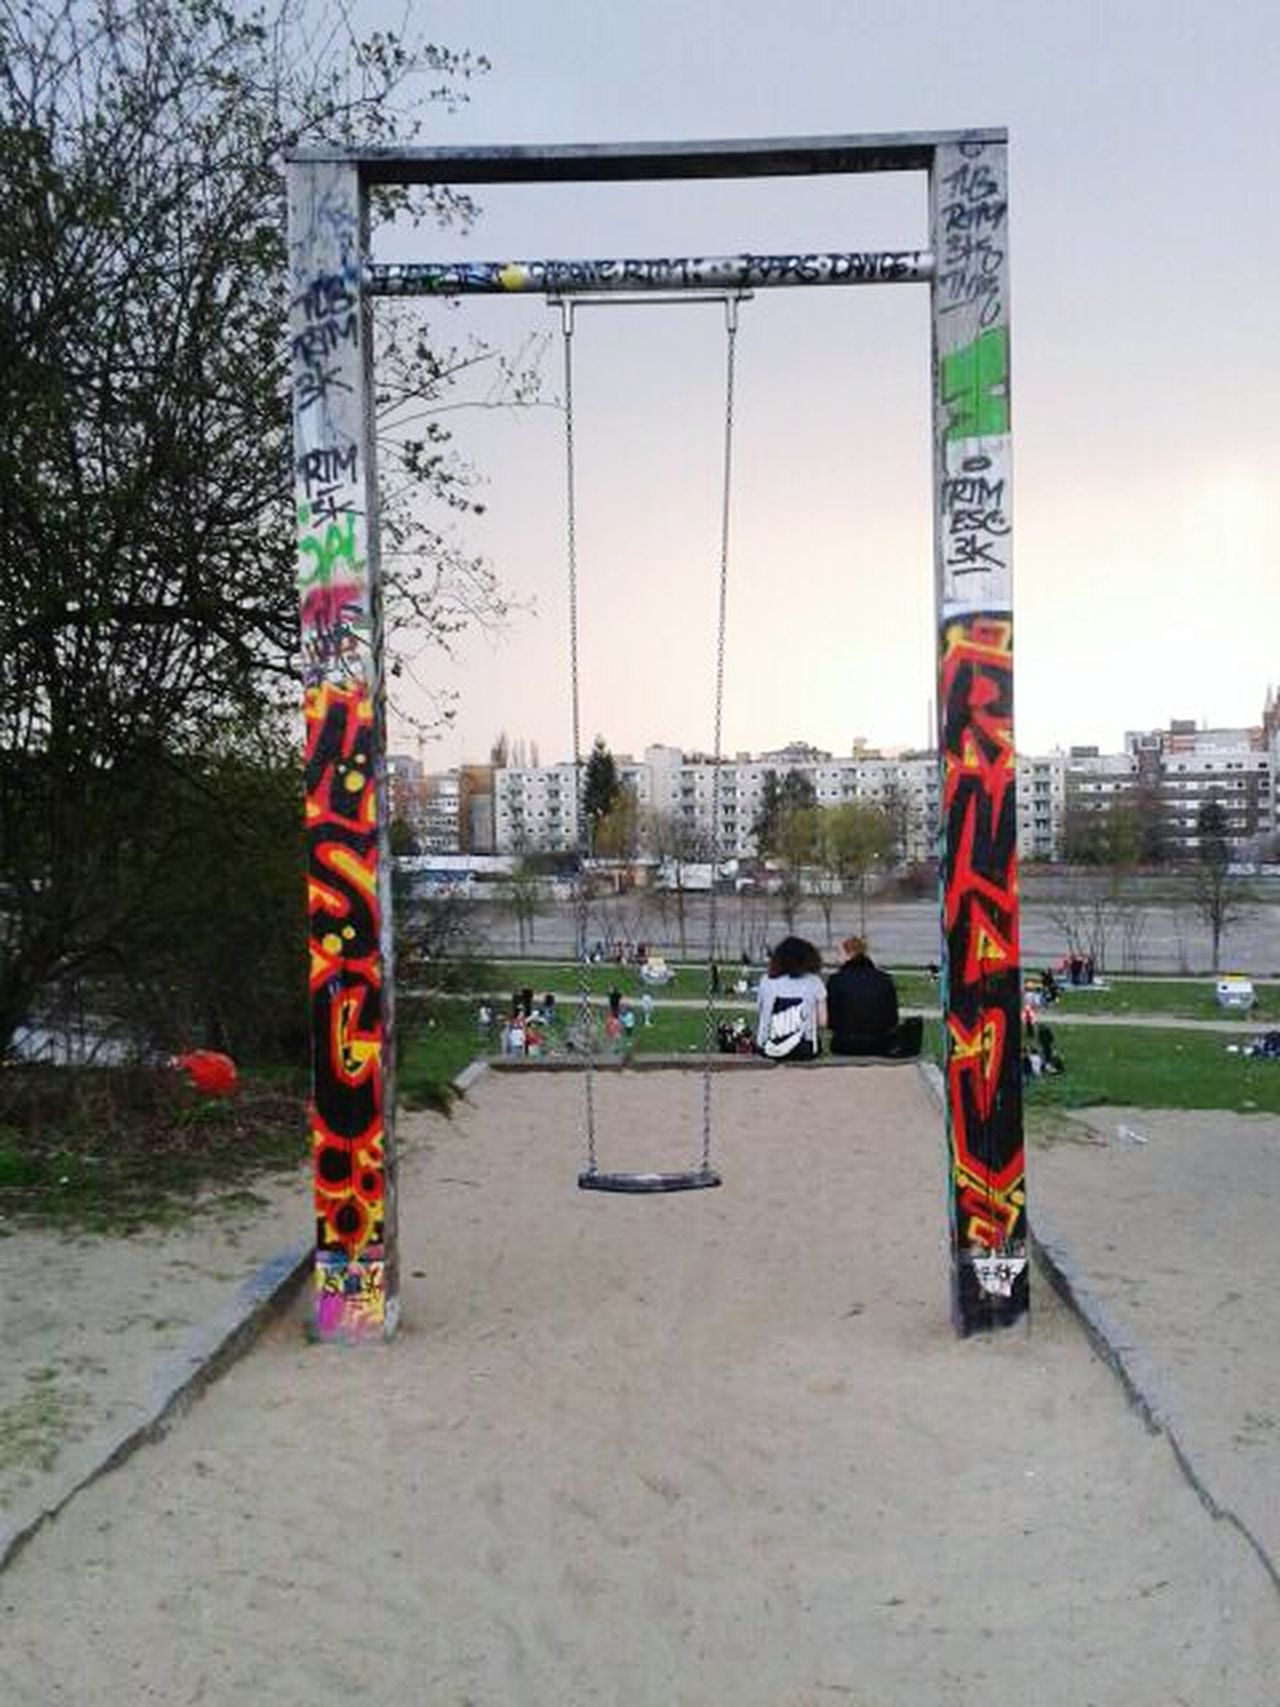 Tree Sky Outdoors Playground People Two People City Full Length Childhood Business Finance And Industry Adults Only Water Day Only Men Adult Geaffiti Berlin German Mauerpark Graffitiporn Graffiti The World Pictureoftheday